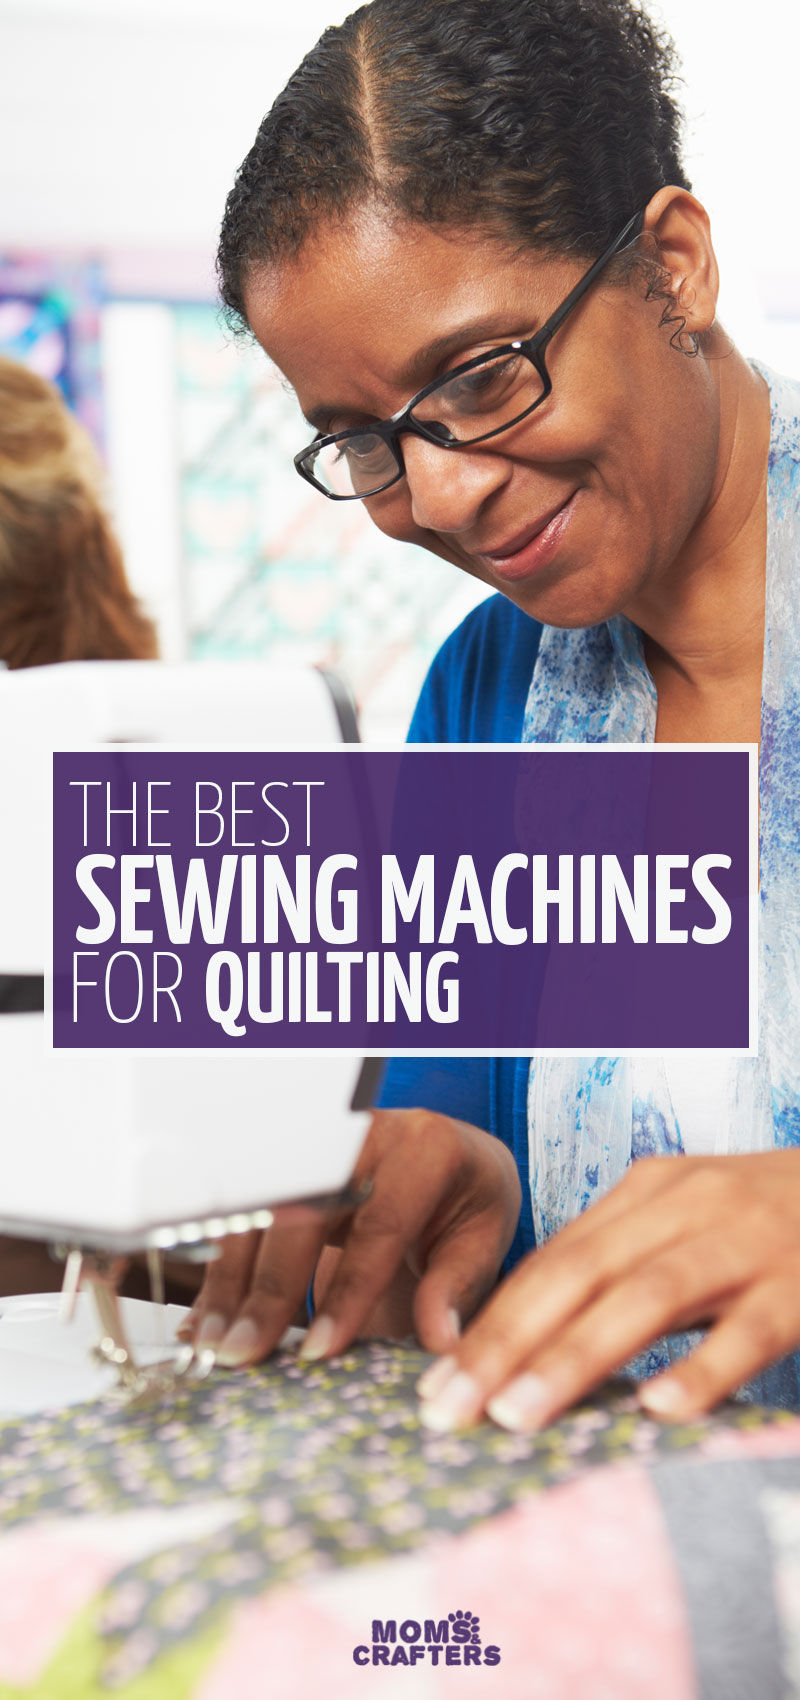 Click for reviews of the best sewing machine for quilting for every need and budget! This quilting for beginners tips helps you get the right sewing machine for your needs.